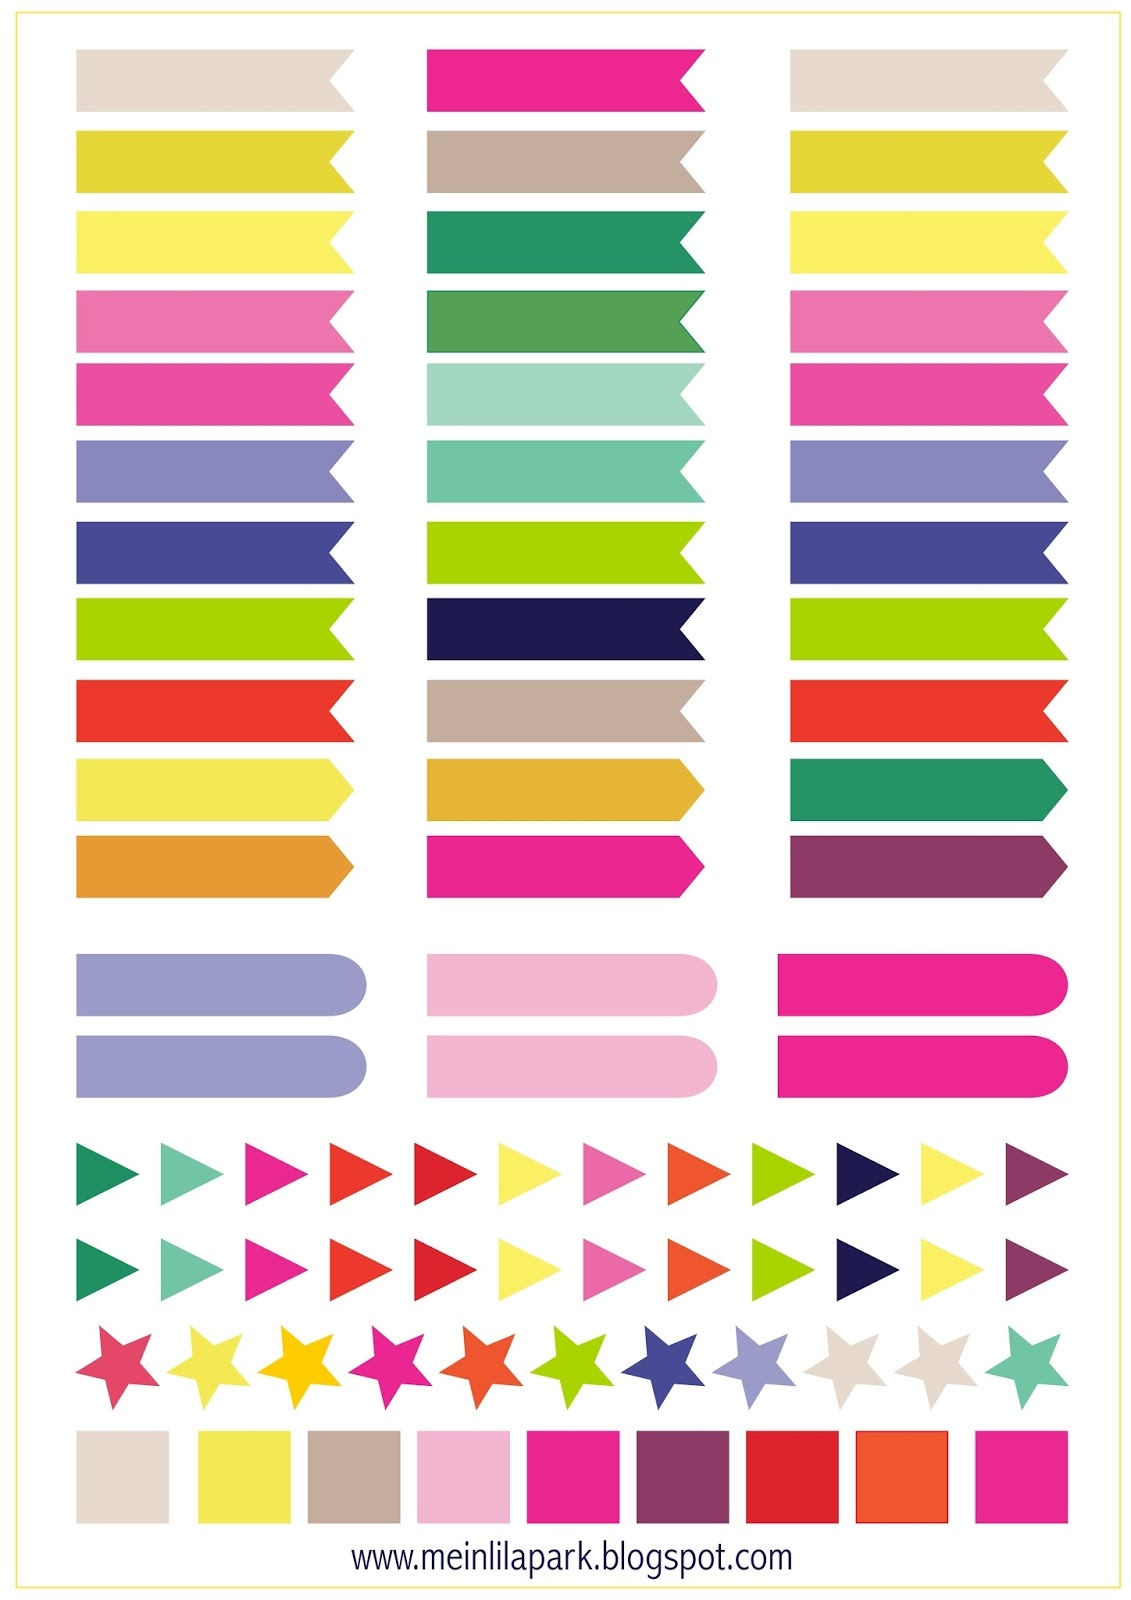 Free Printable Calendar Planner Flags And Markers Ausdruckbare3abry